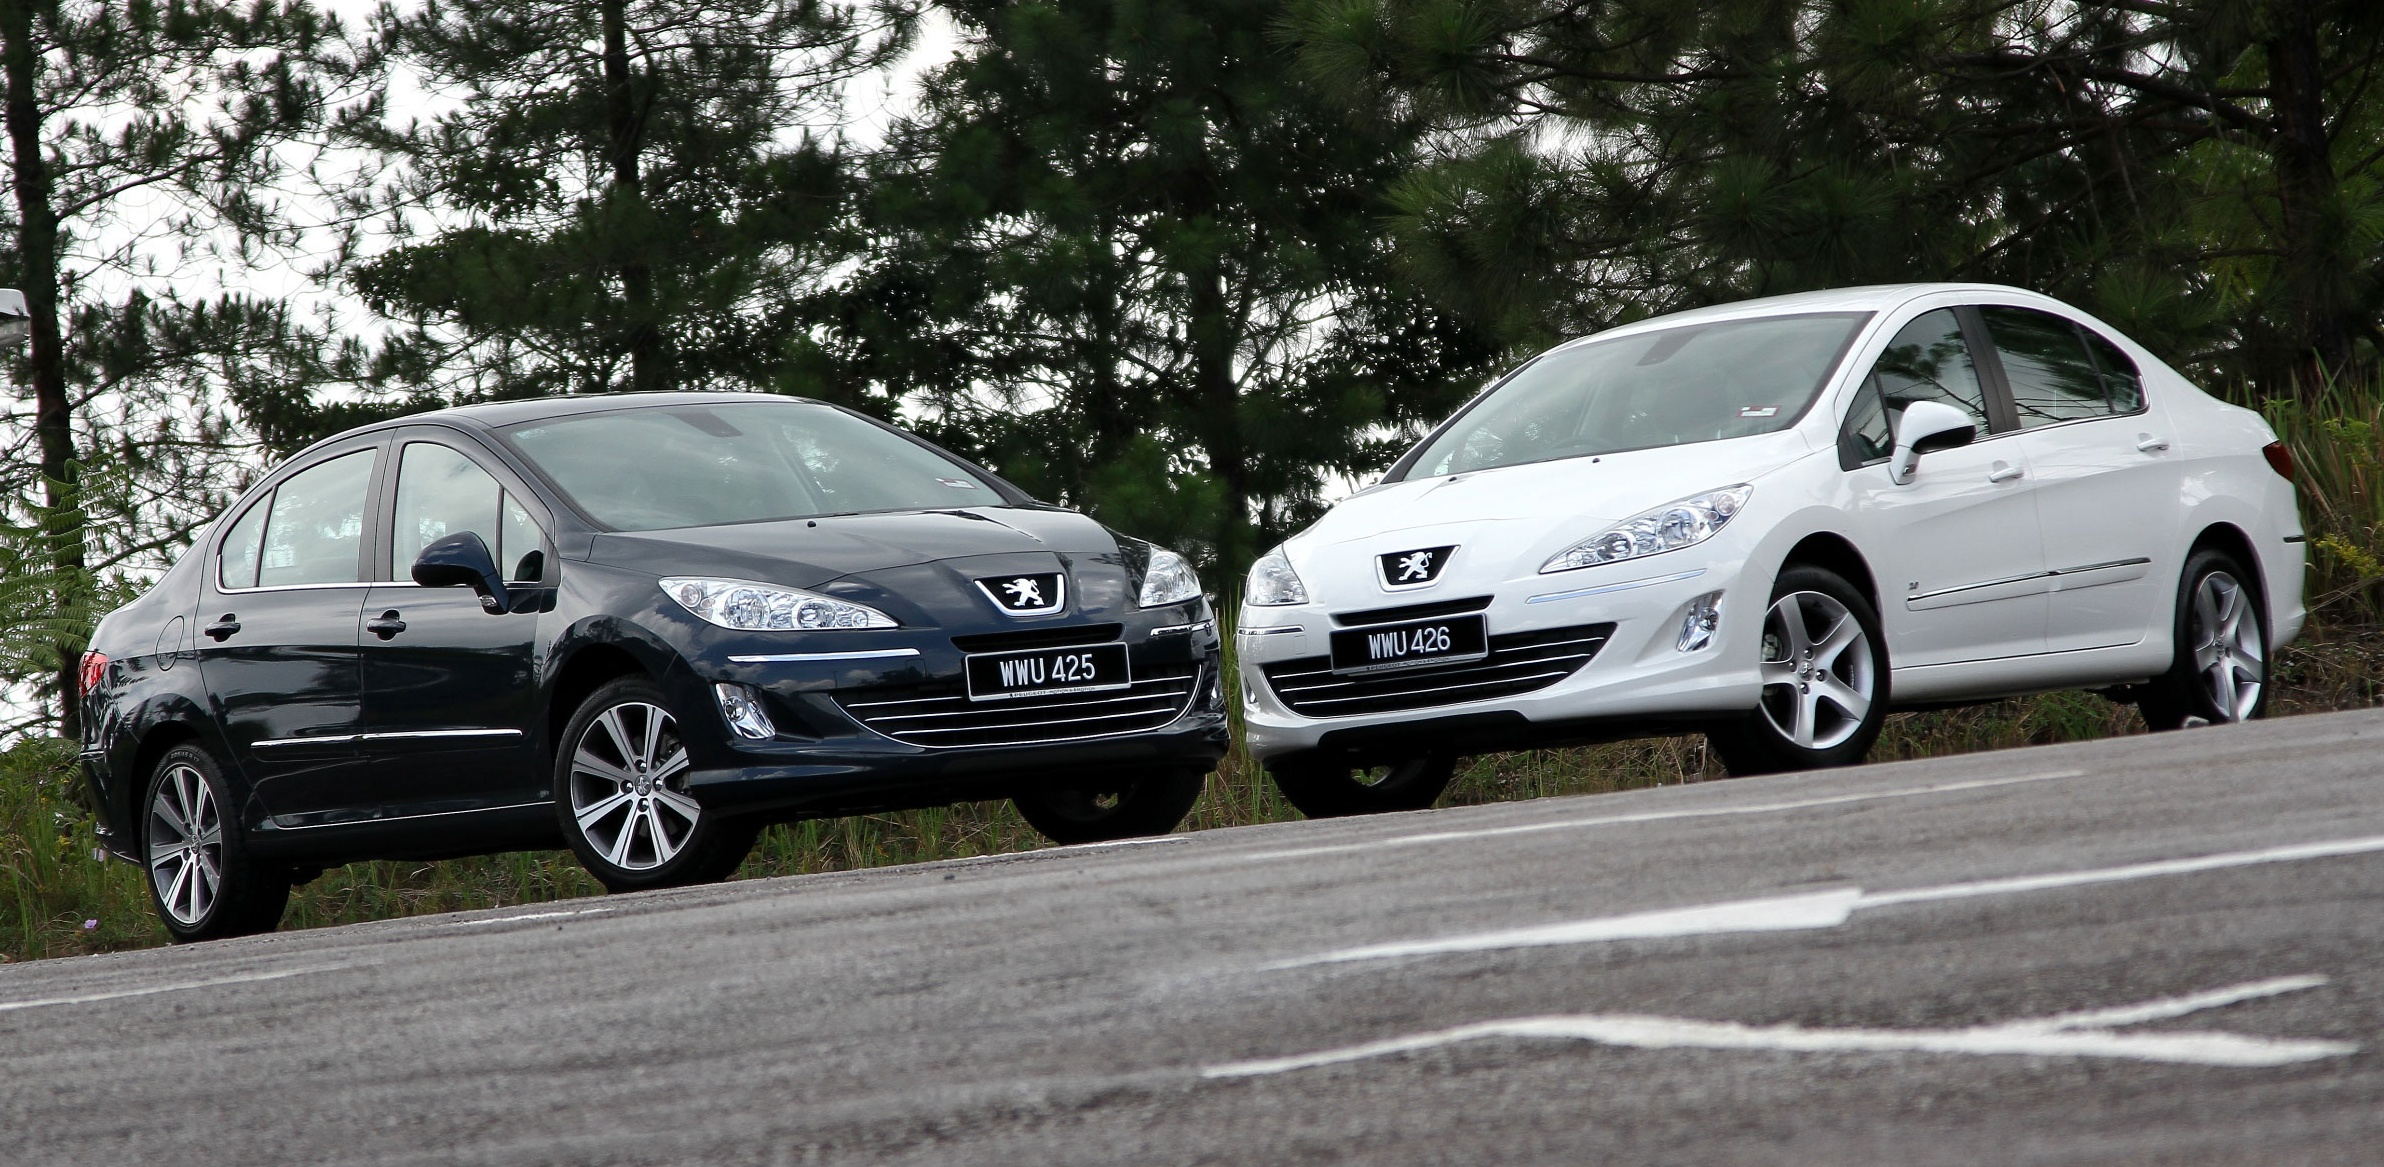 Five-year Free Service Programme With Peugeot 408 Purchase